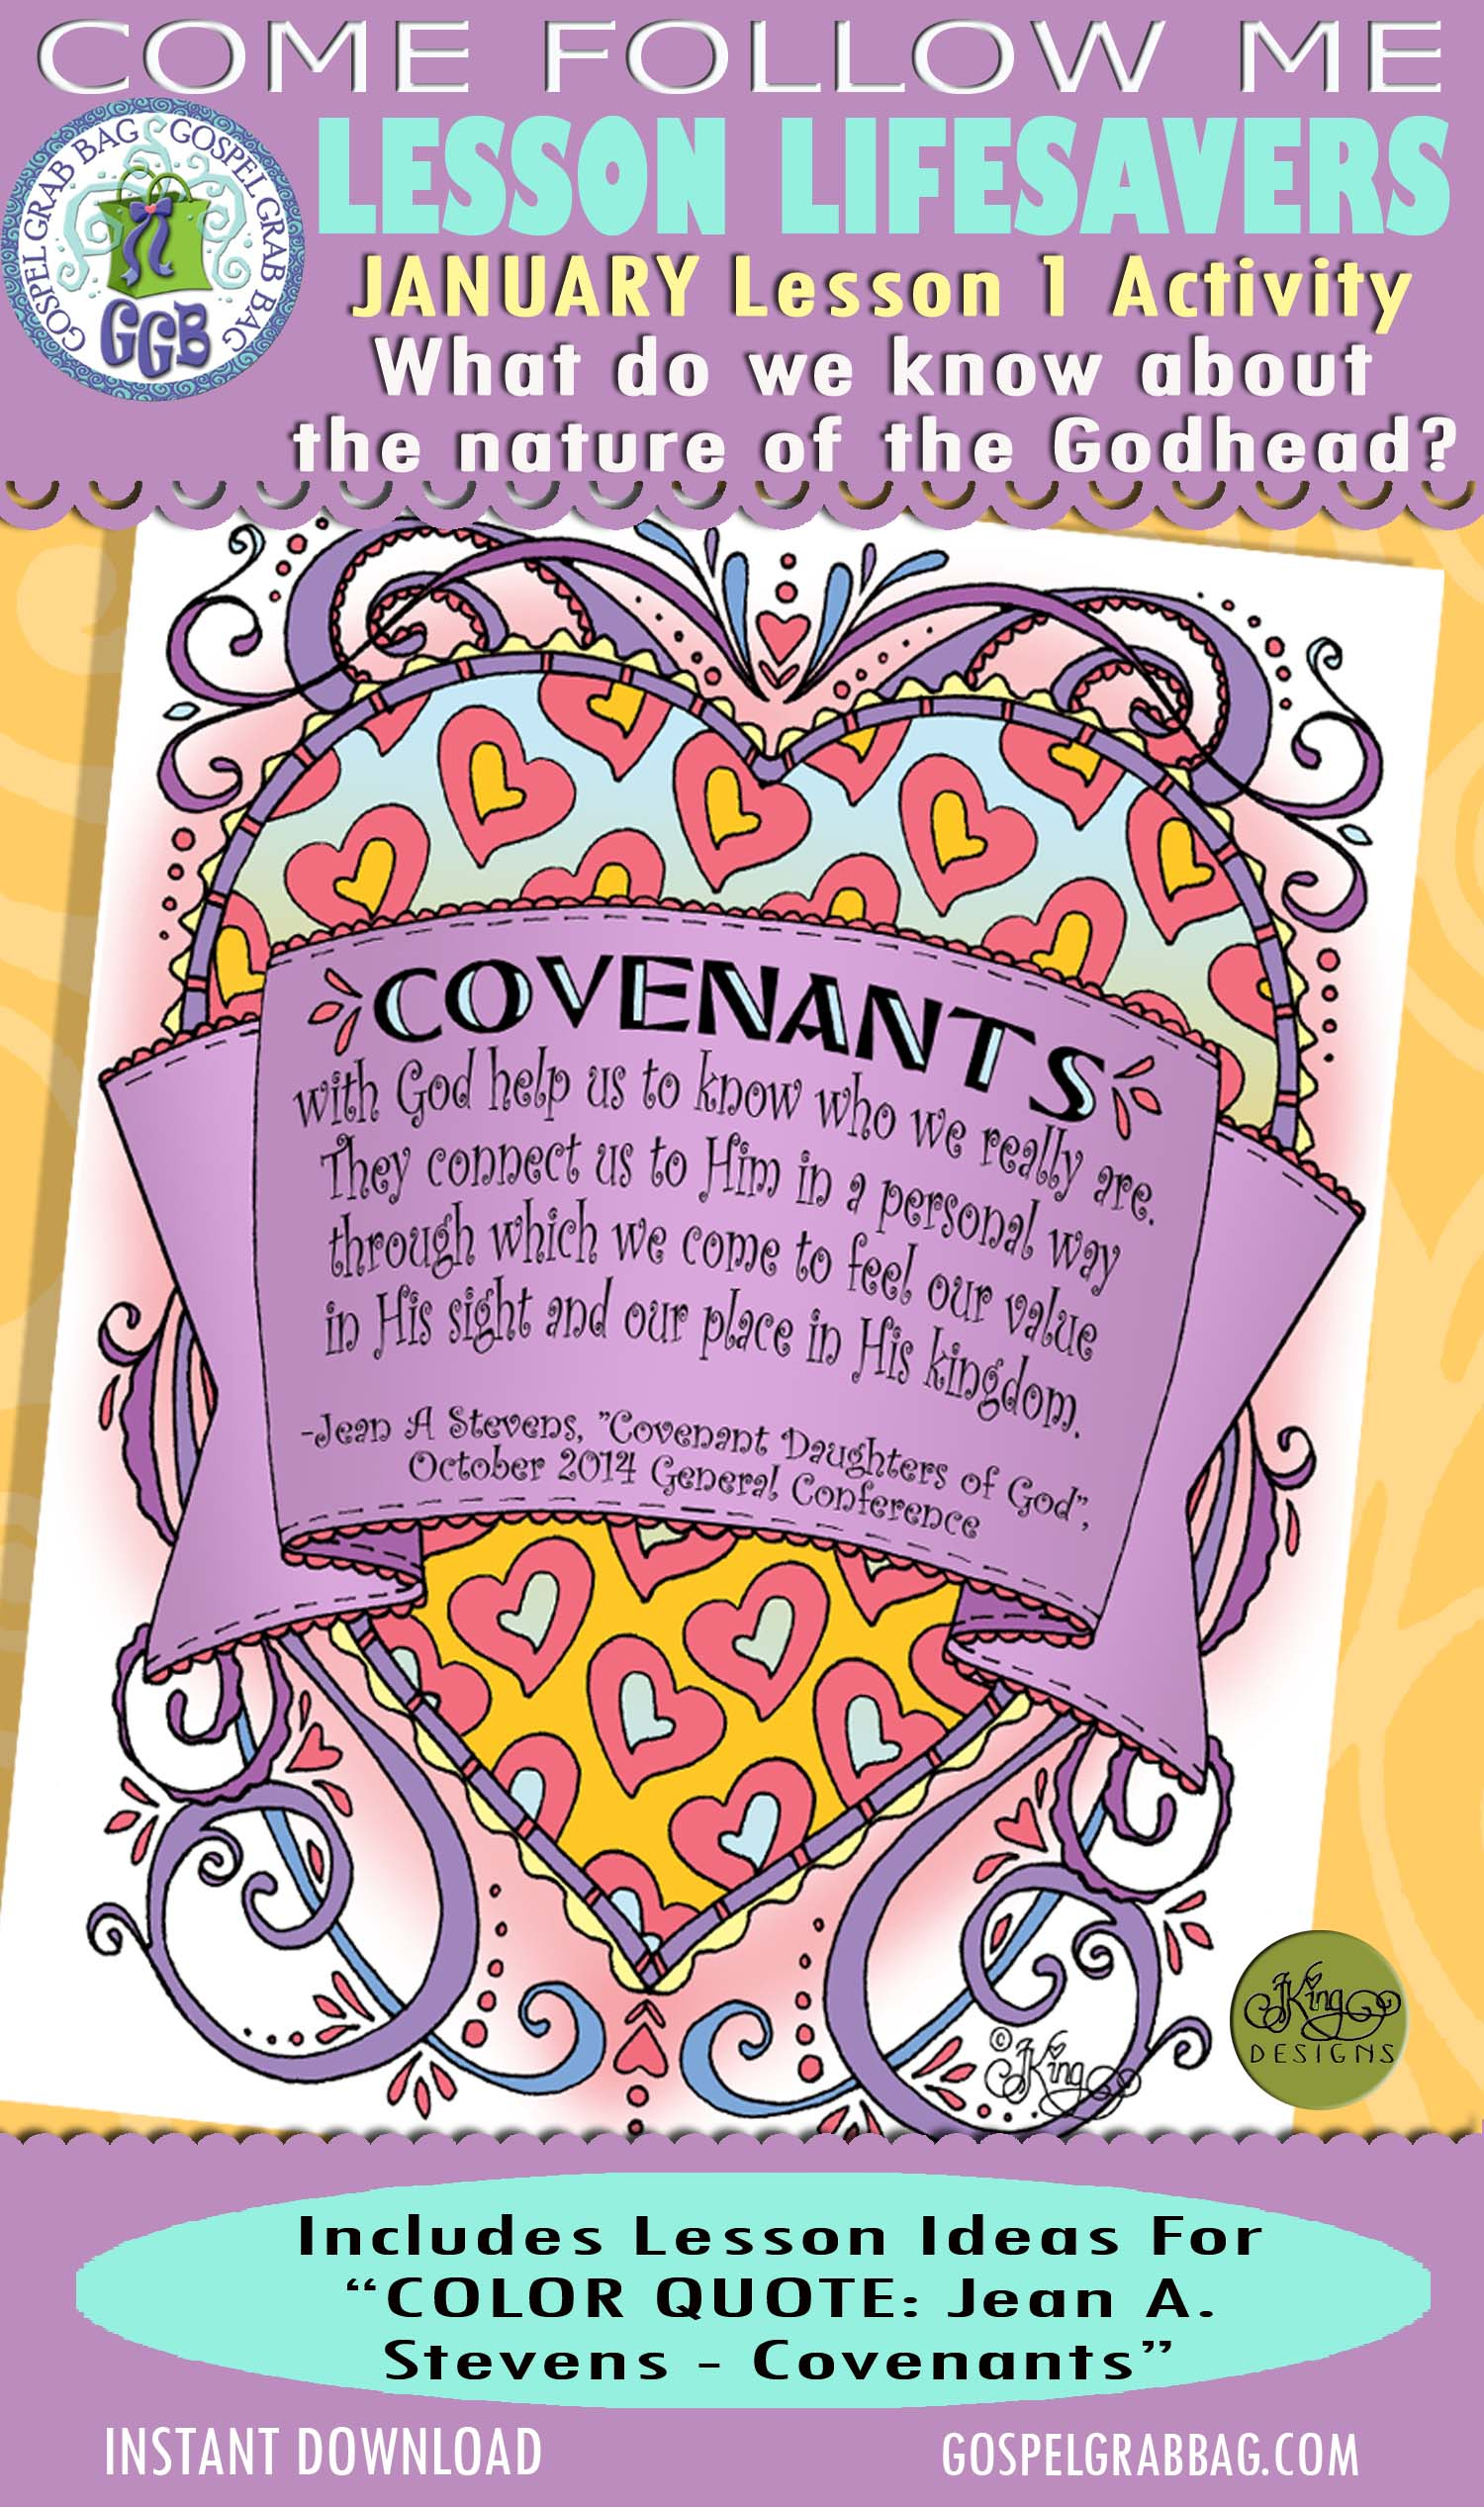 """$2.00 January Lesson 1 - Come Follow Me """"What do we know about the nature of the Godhead?"""" ACTIVITY: Color Quote """"Covenants of God help us . . ."""""""